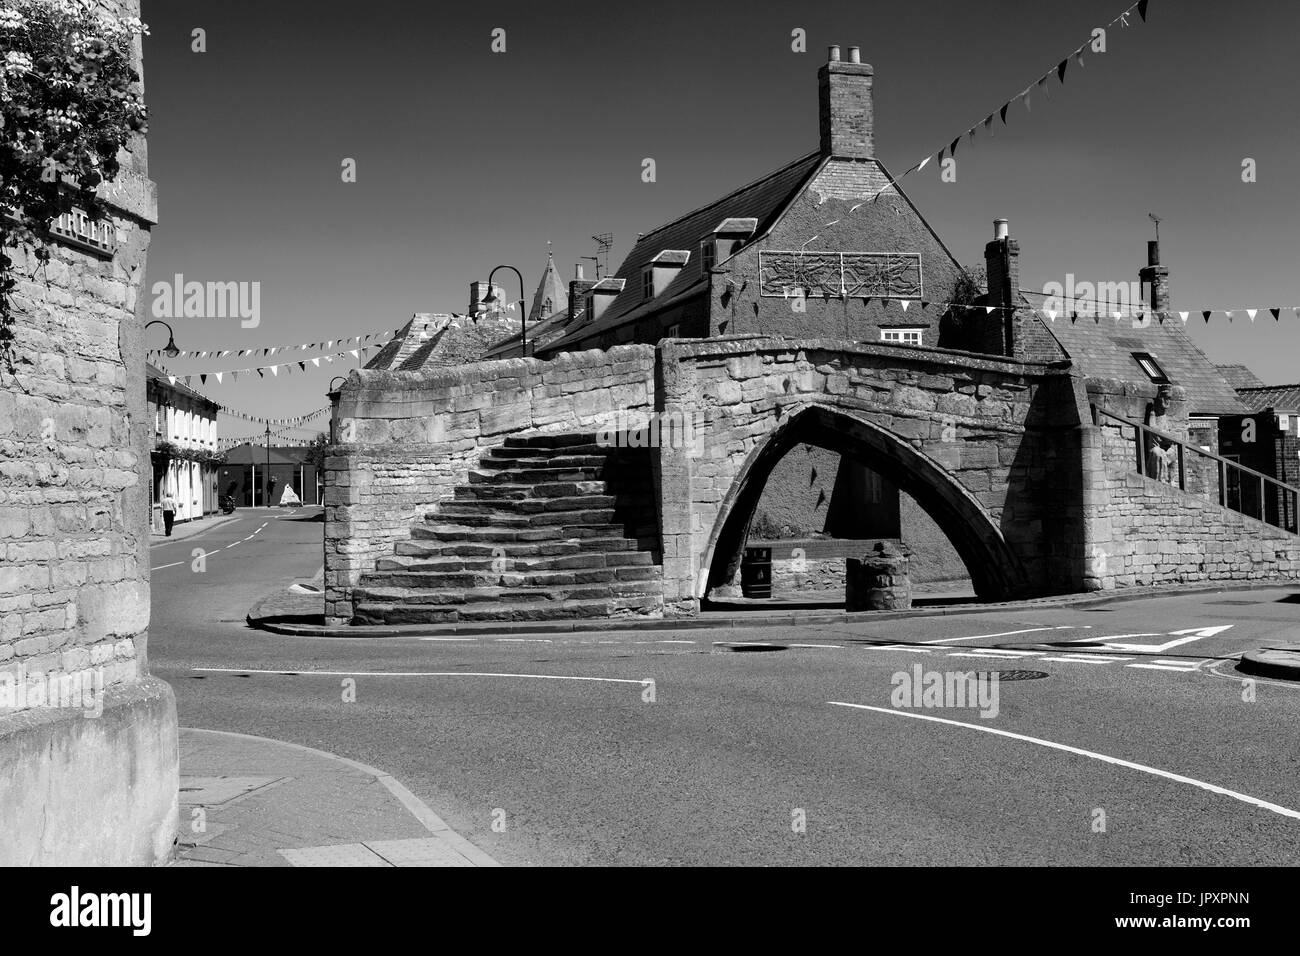 The Trinity Bridge, a 14th Century three-way stone arch bridge, Crowland town, Lincolnshire, England, UK - Stock Image